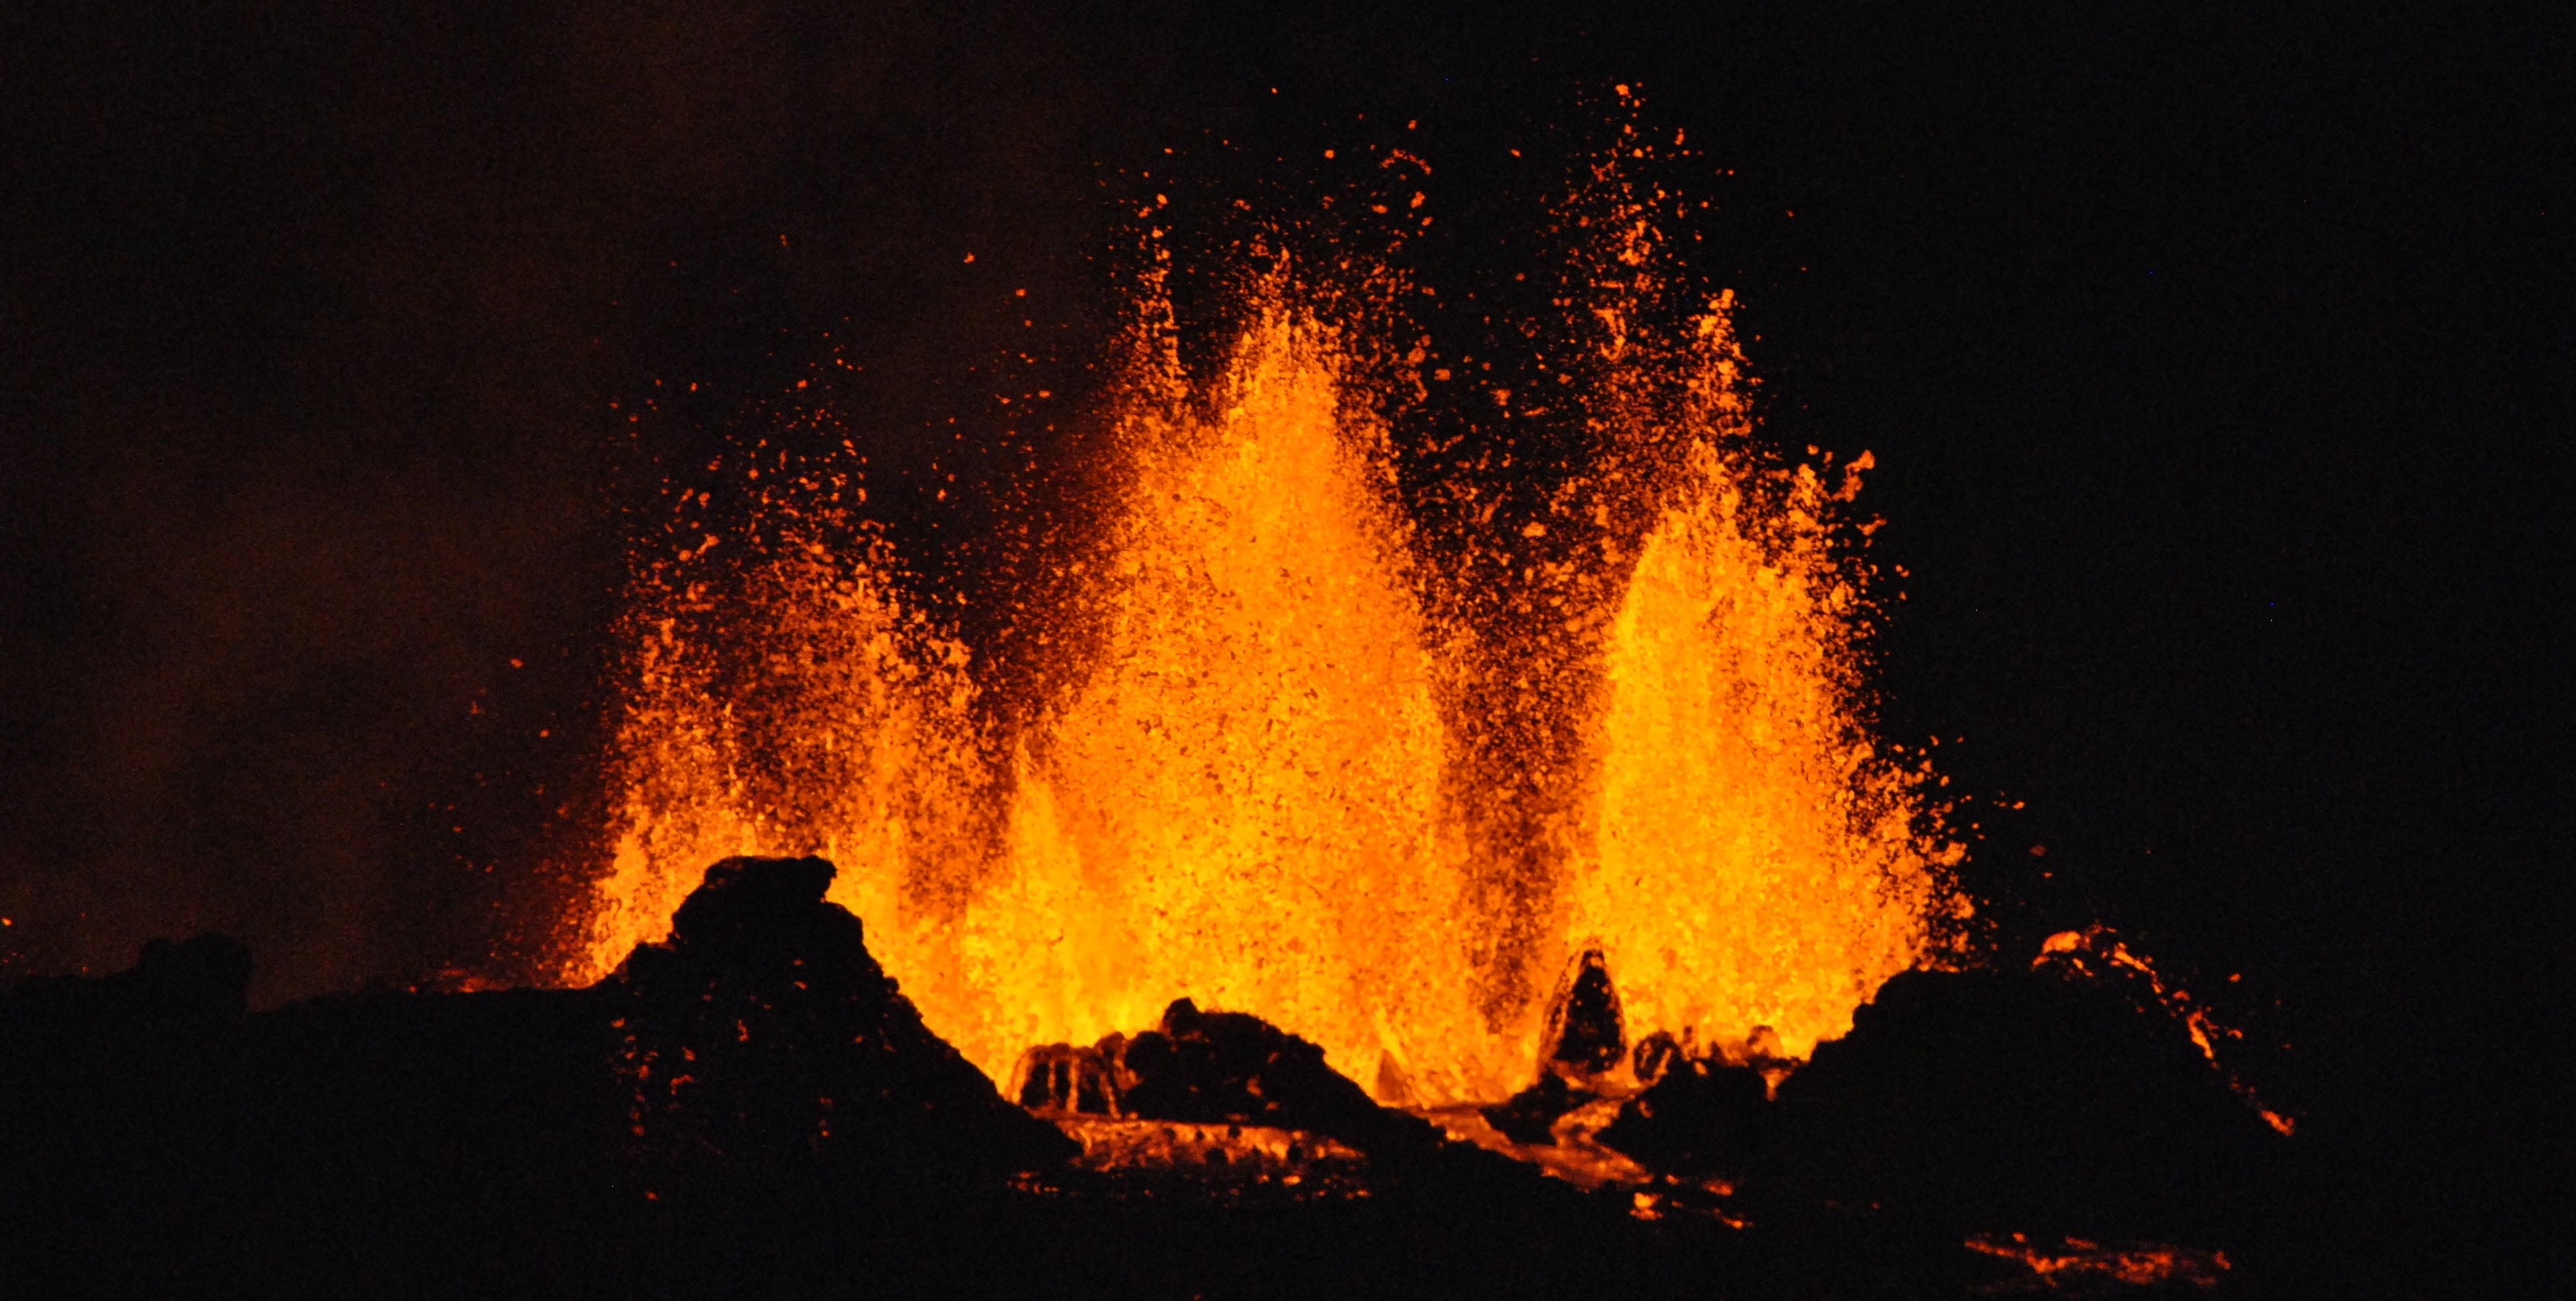 Lion Quotes Wallpaper Volcano Erupting Under Burning Collection 12 Wallpapers